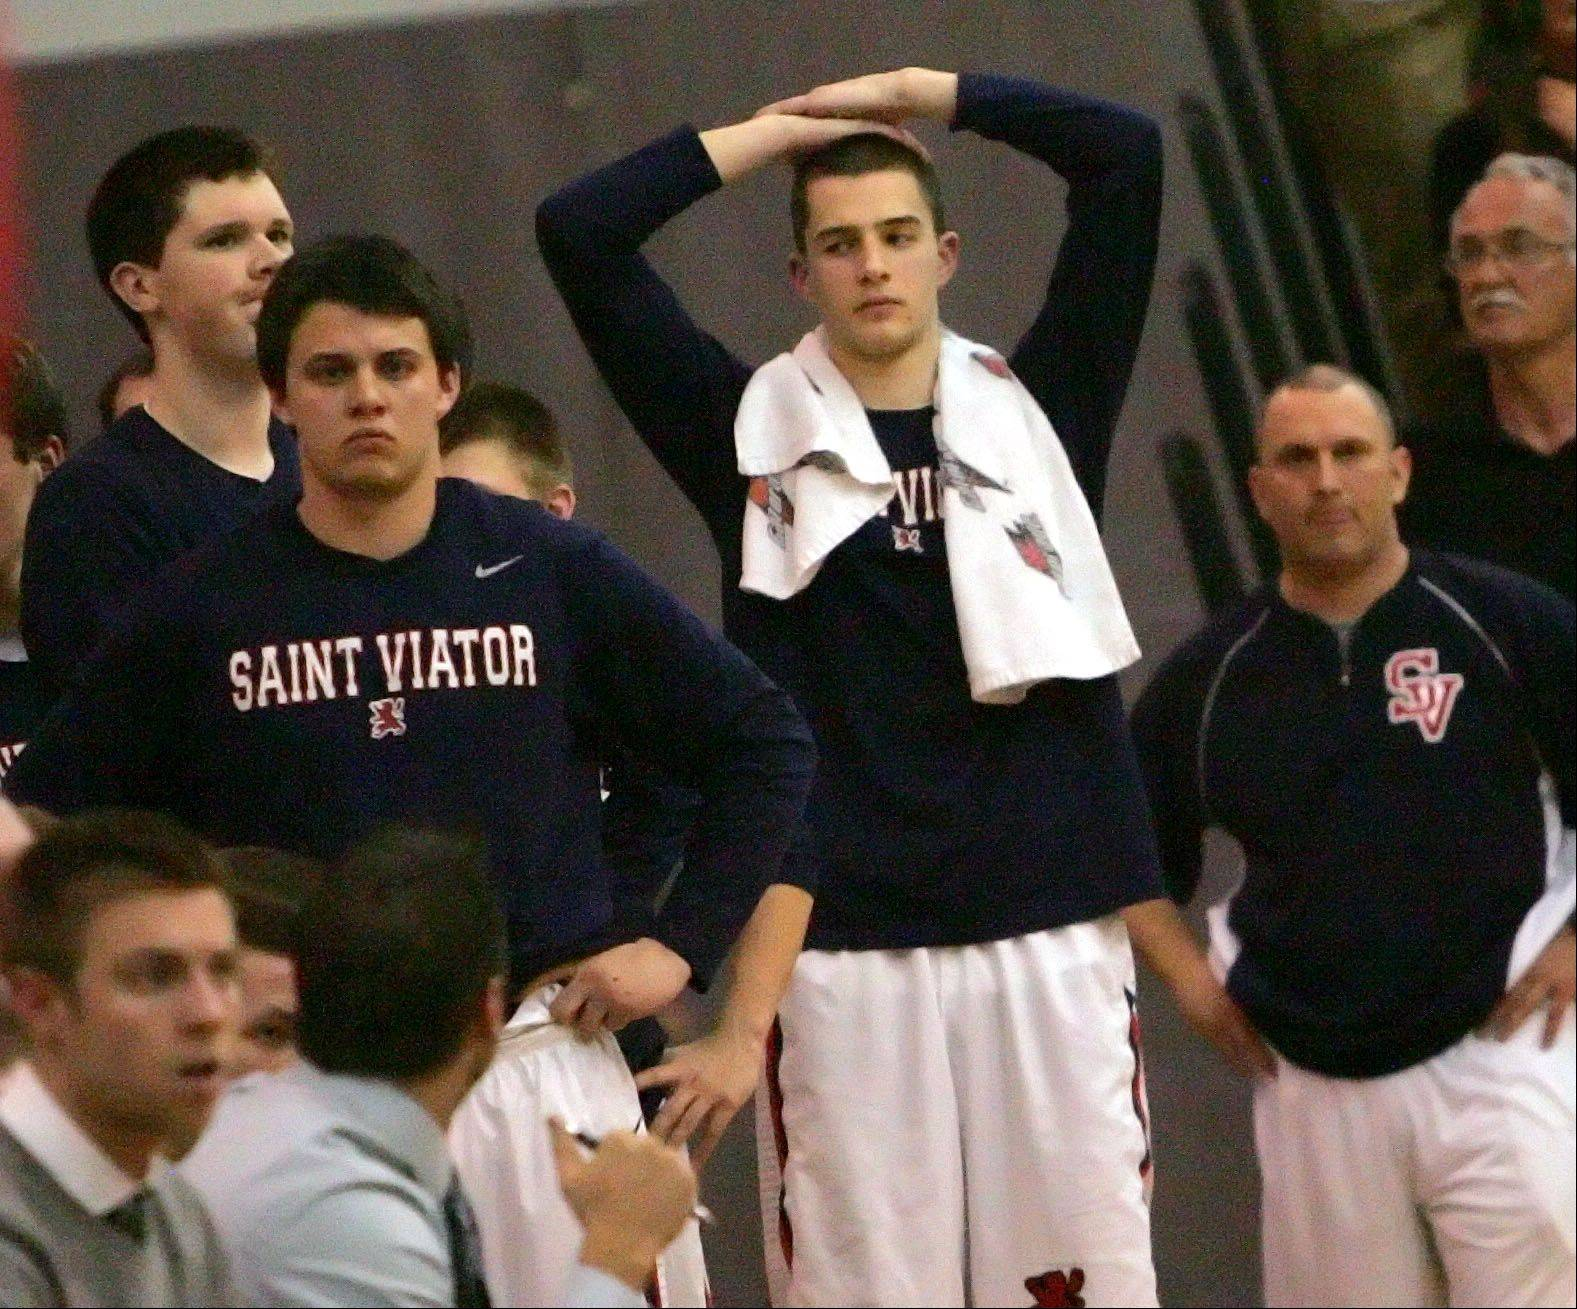 Players on the St. Viator bench react after their loss to Mundelein.